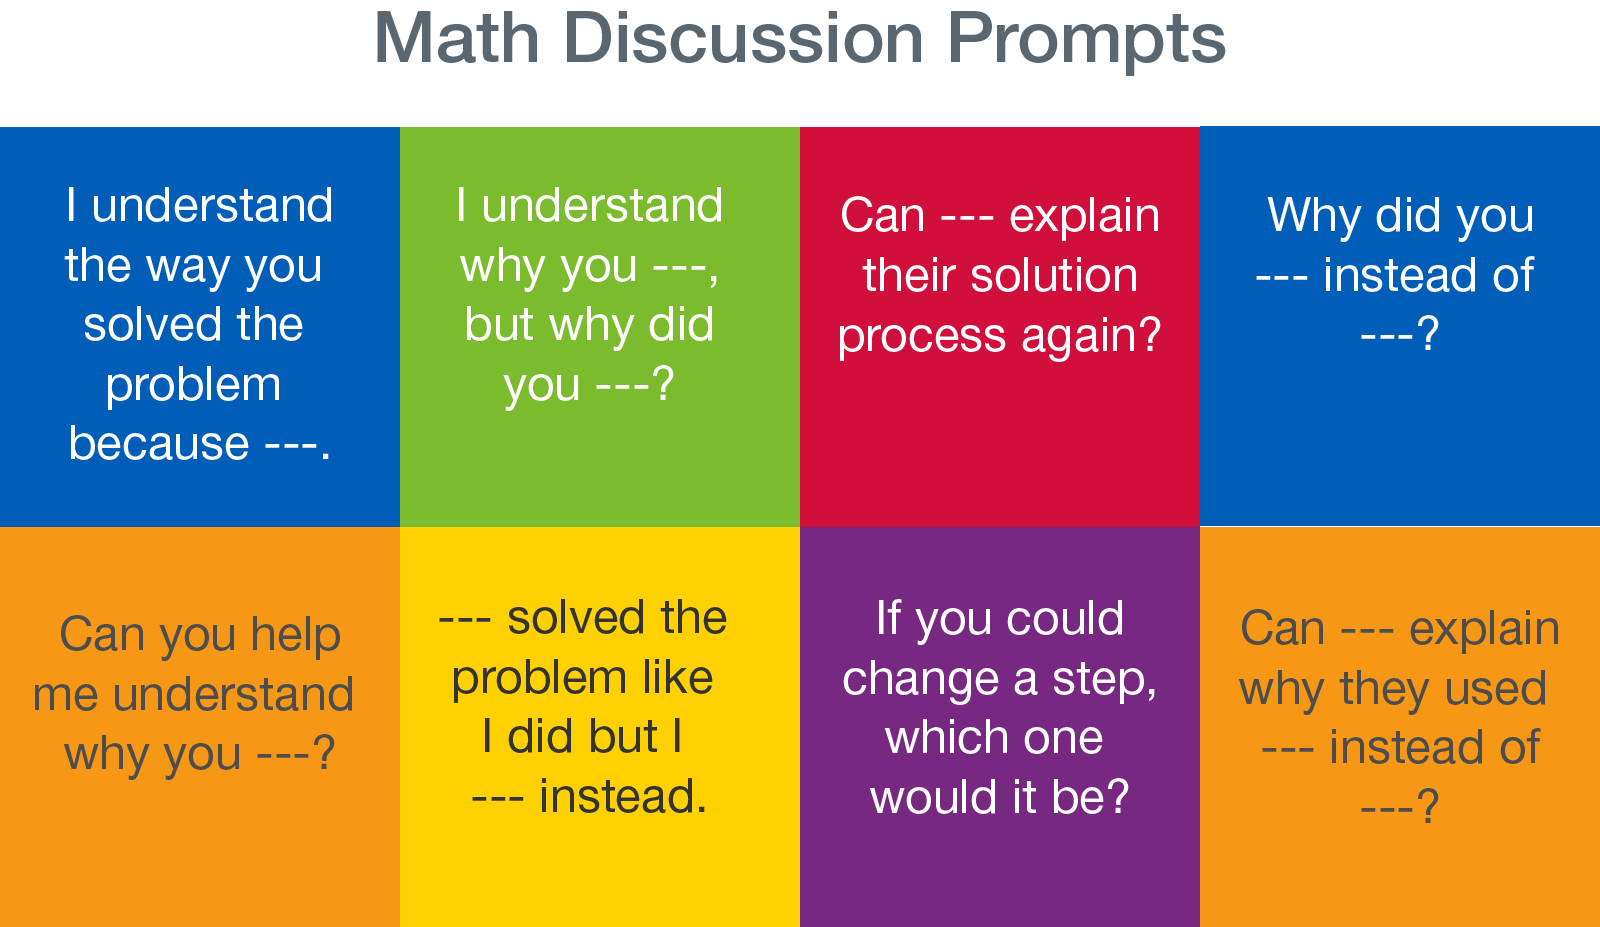 Math Discussion Prompts